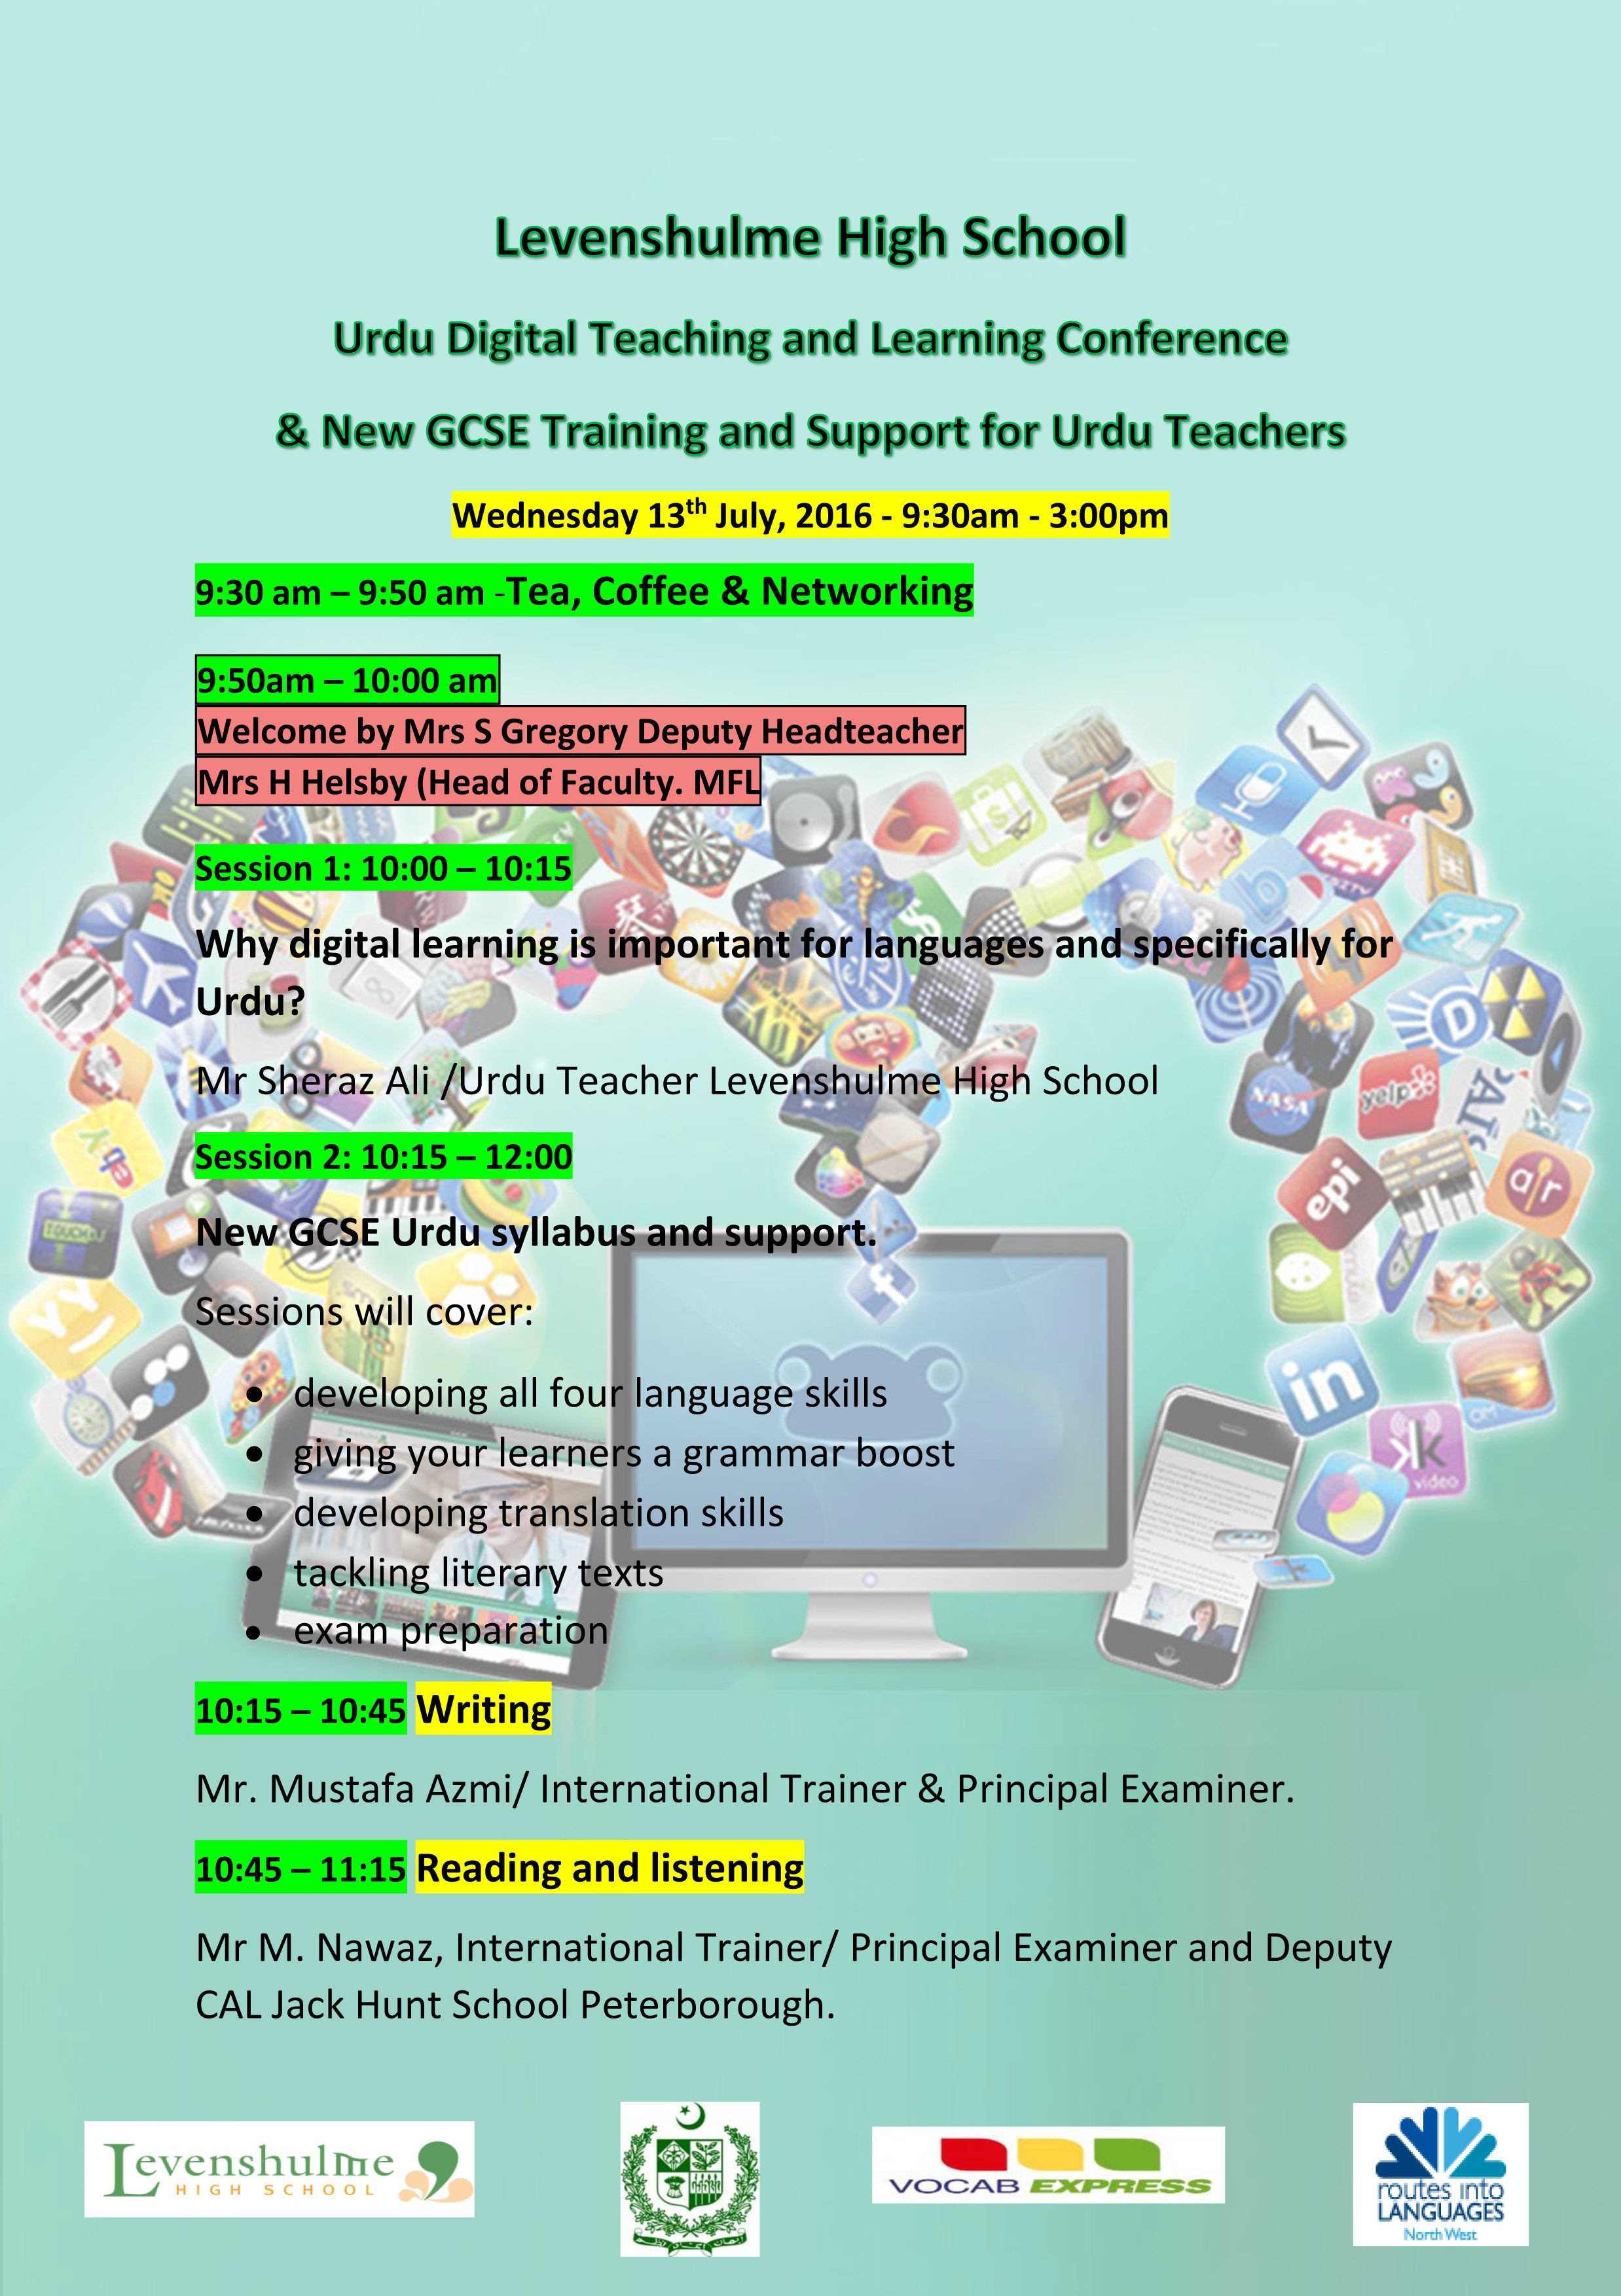 Urdu Digital Teaching and Learning Conference & New GCSE Training